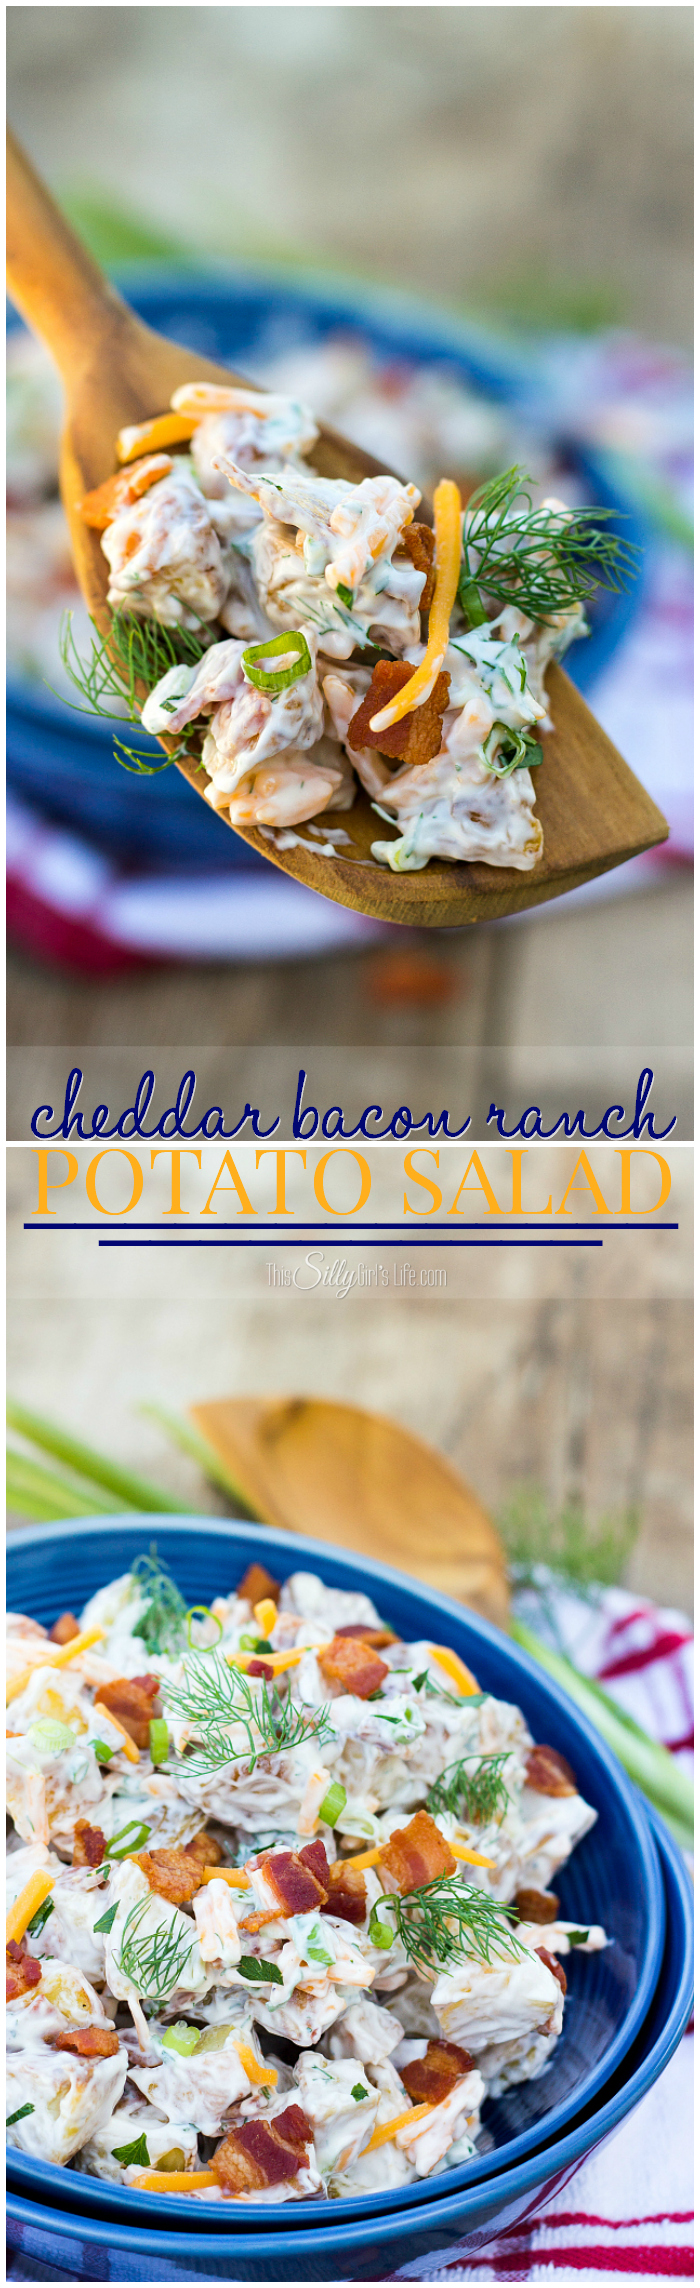 Cheddar Bacon Ranch Potato Salad, the name says it all, roasted potatoes combined in a creamy dressing with fresh dill and scallions! -- ThisSillyGirlsLife.com #sponsored #ad #boldbacon